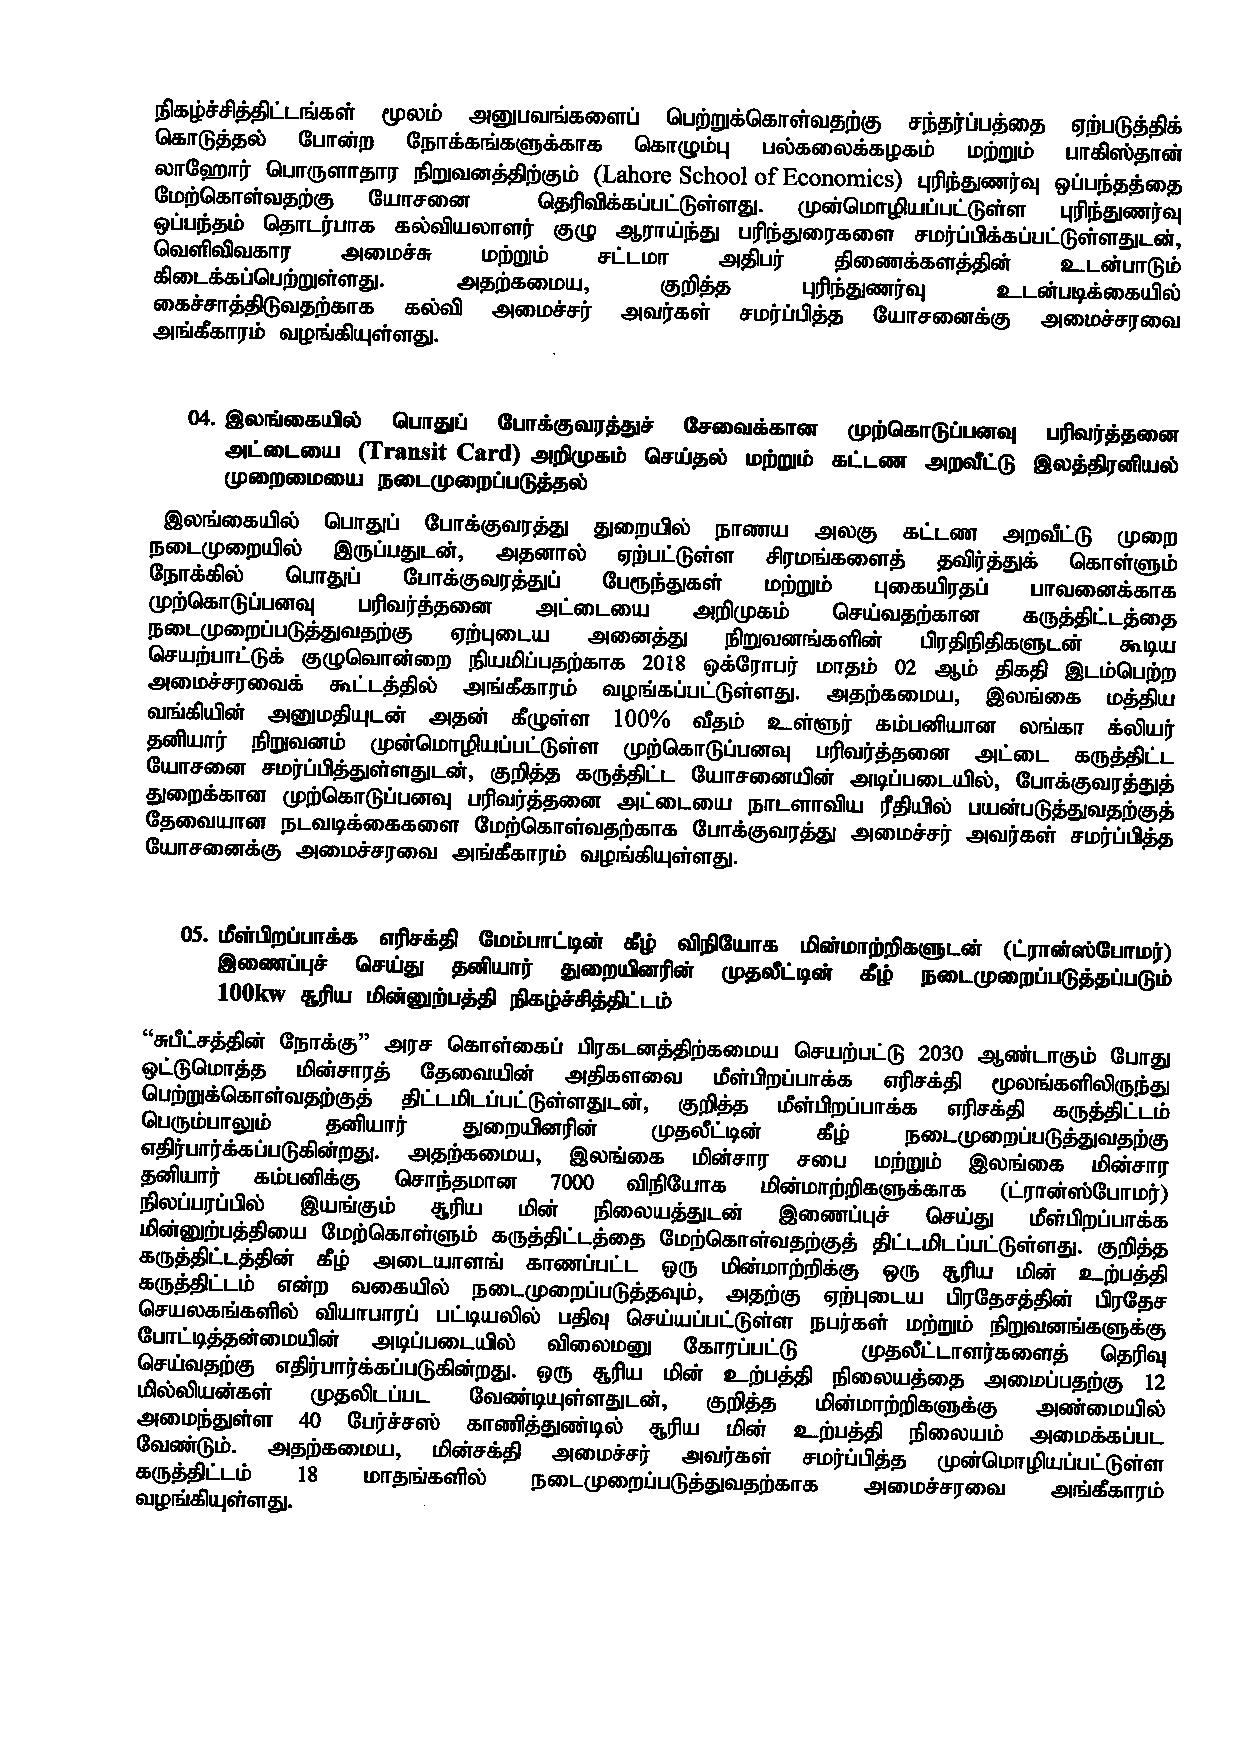 Cabinet Decison on 15.02.2021 Tamil page 002